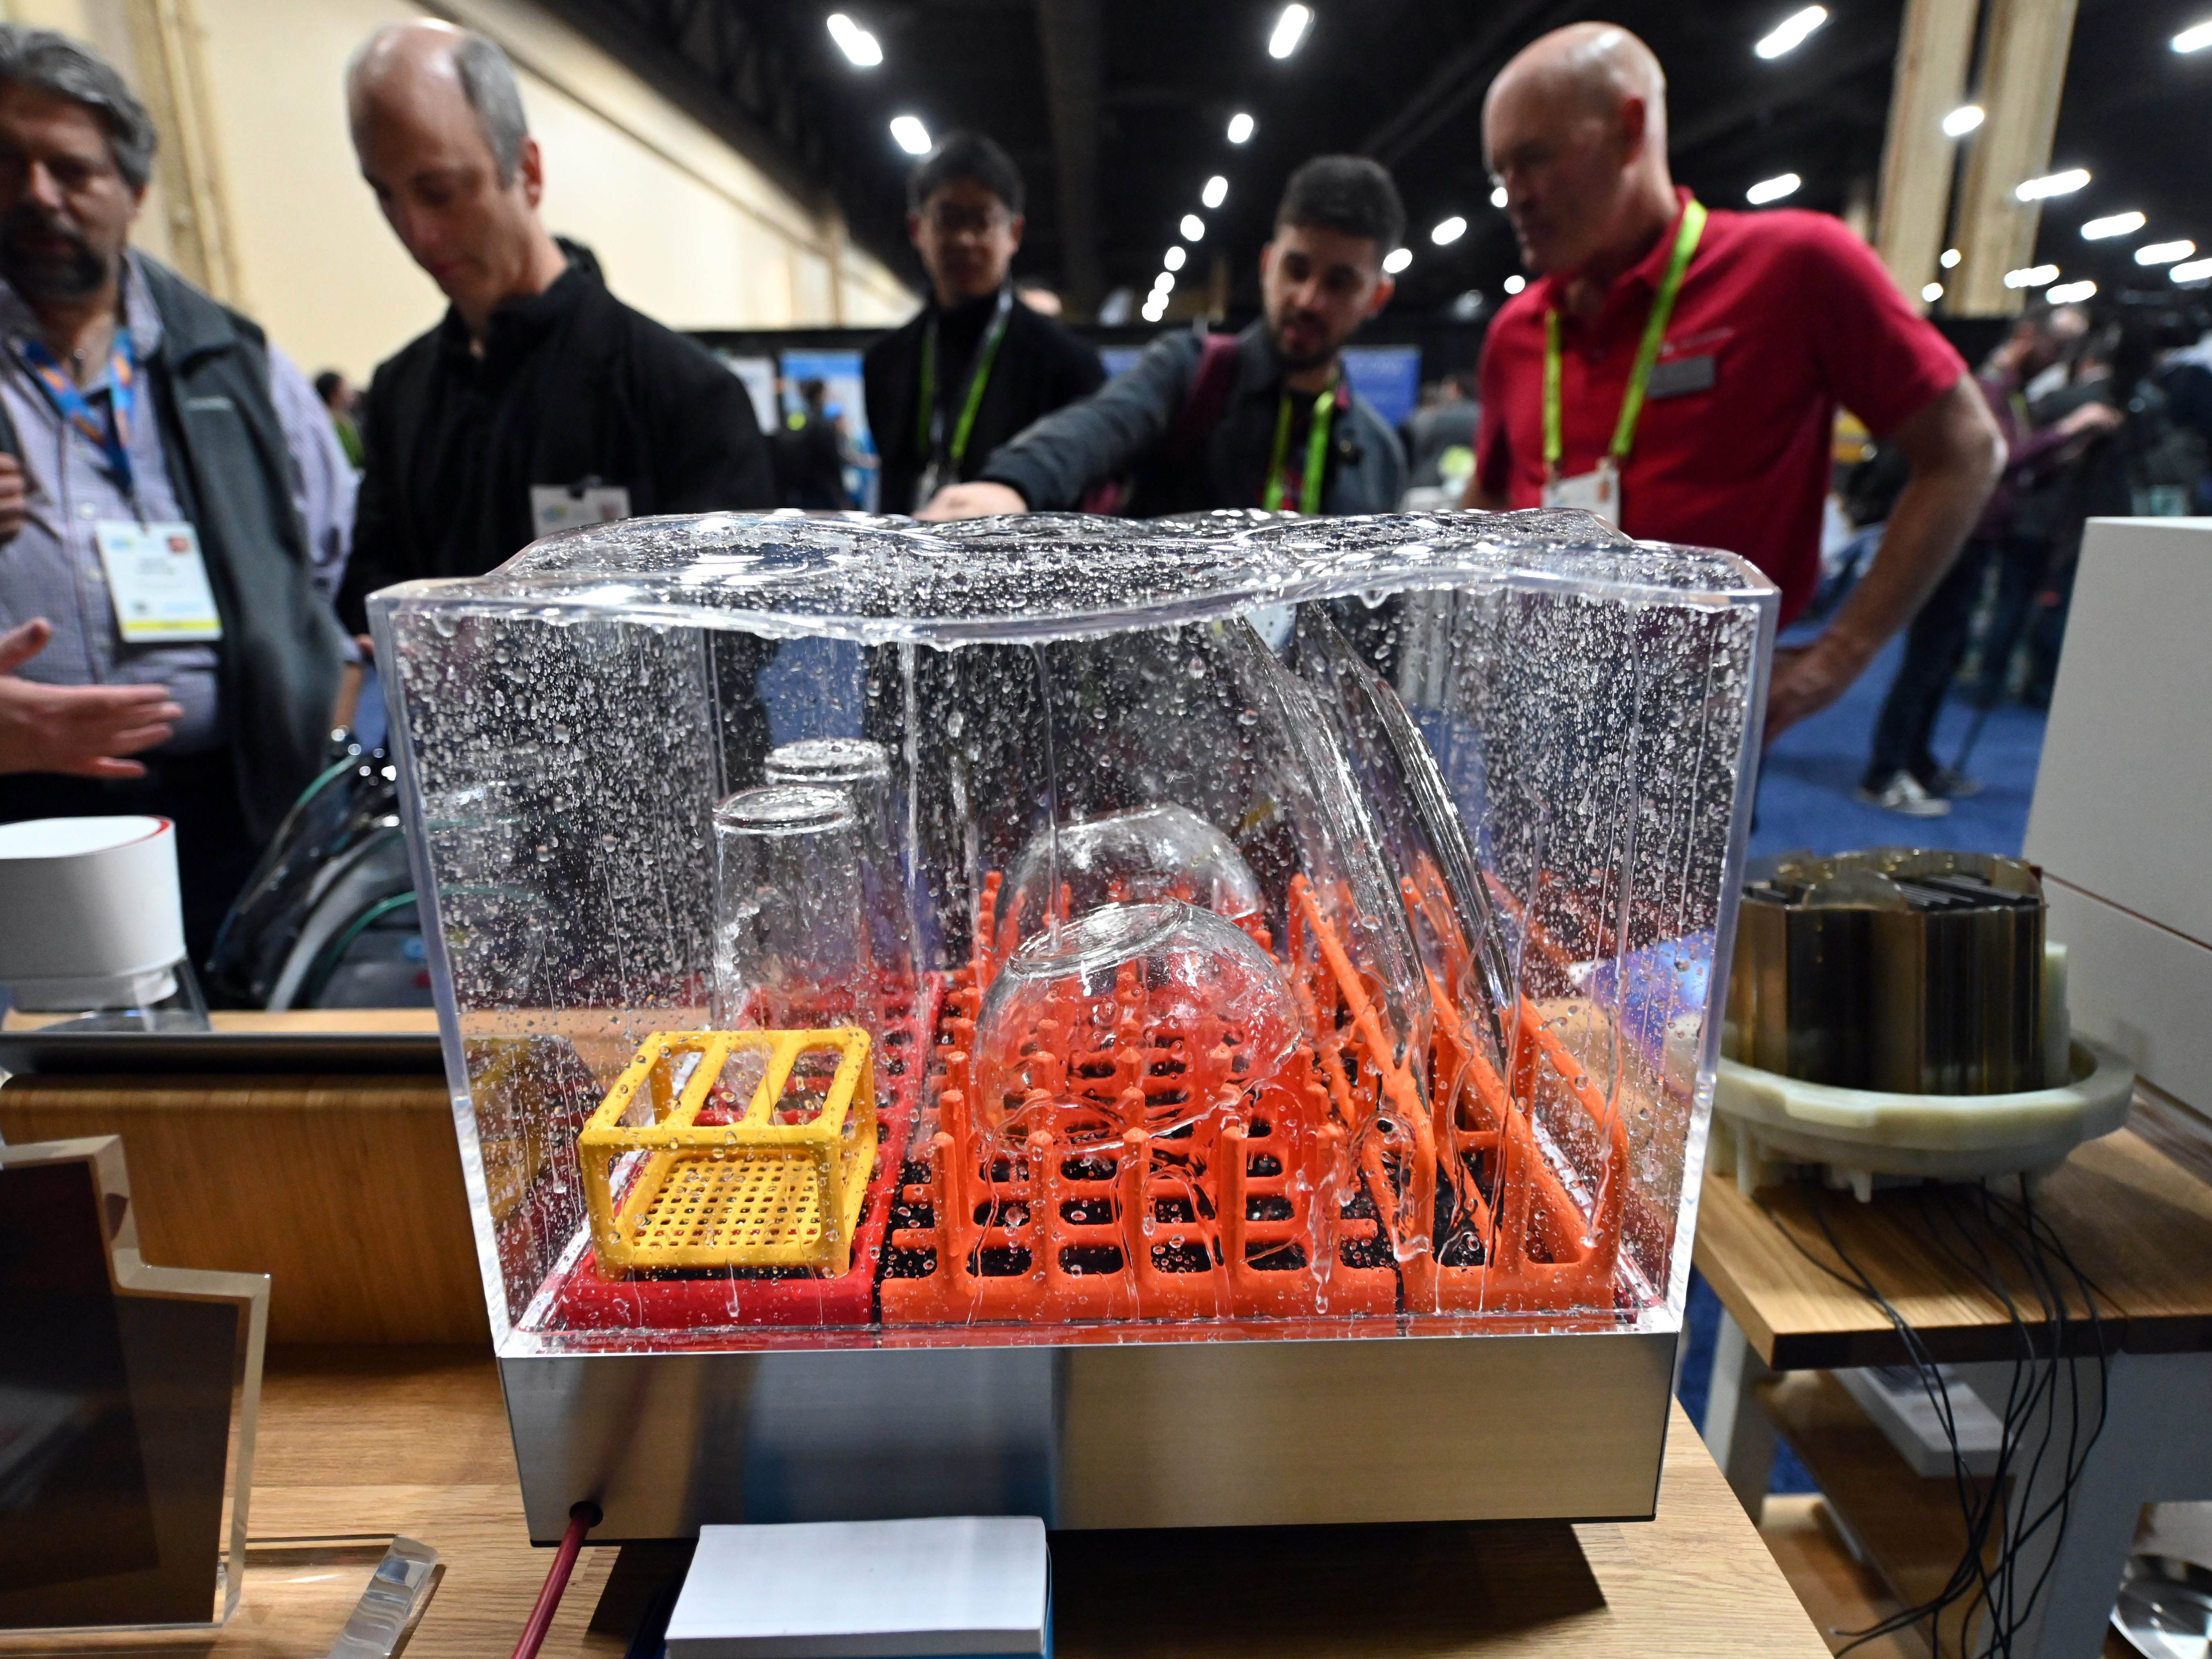 January 6, 2019; Las Vegas, NV, USA;  Tetra, a compact dishwasher from Heatworks on display at CES Unveiled, a media preview event at the Mandalay Bay Convention Center. Tetra uses just a gallon of water and no plumbing is needed. Mandatory Credit: Robert Hanashiro- USA TODAY NETWORK ORIG FILE ID:  20190106_ajw_usa_978.jpg